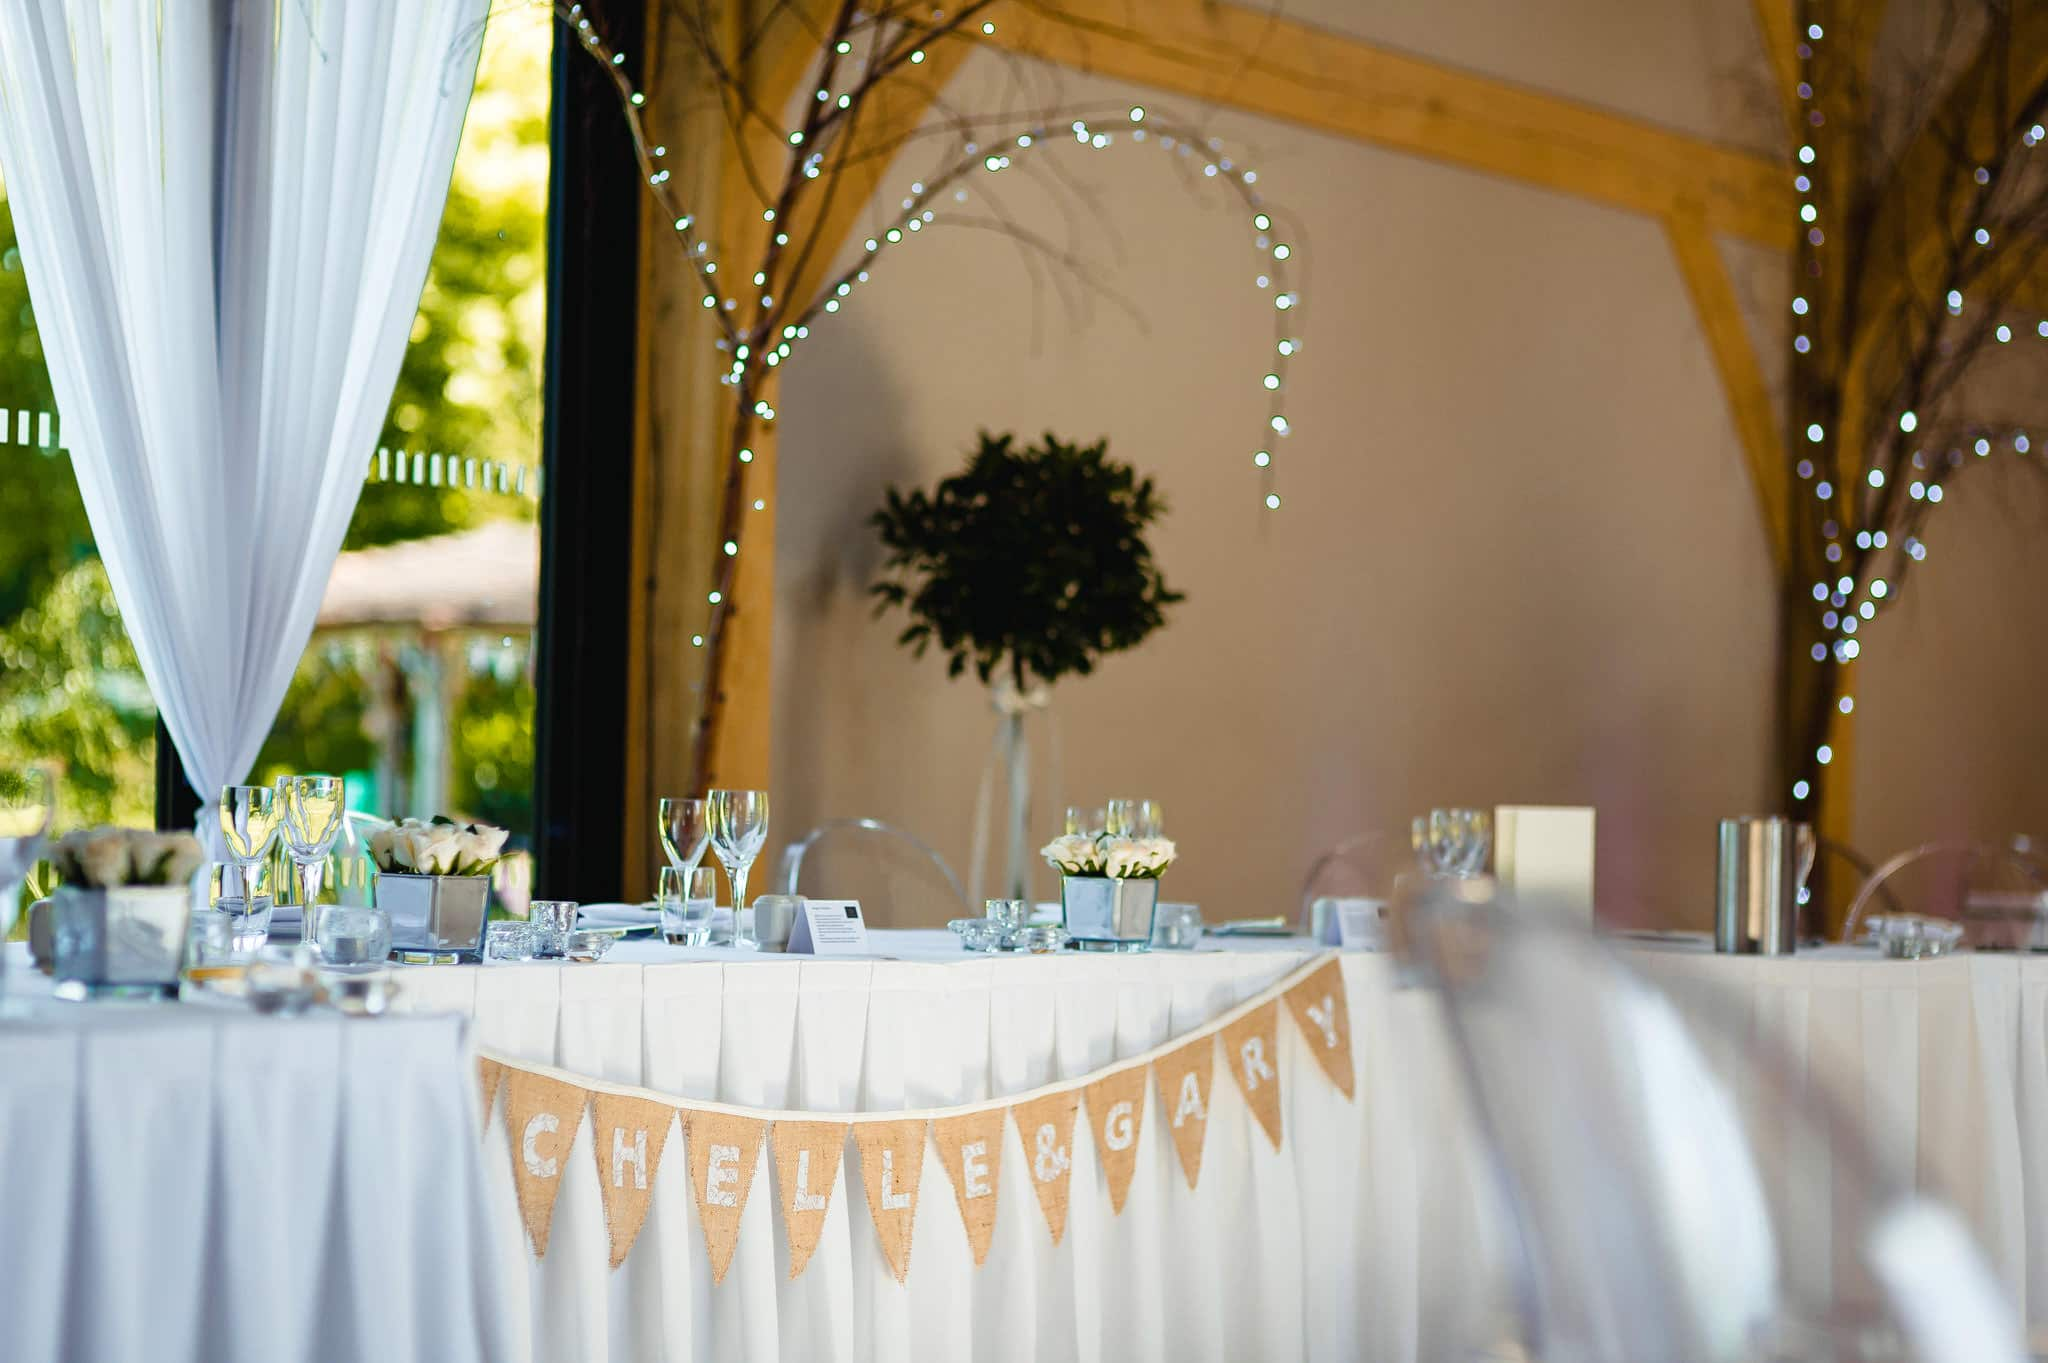 Wedding at Redhouse Barn in Stoke Prior, Worcestershire 38